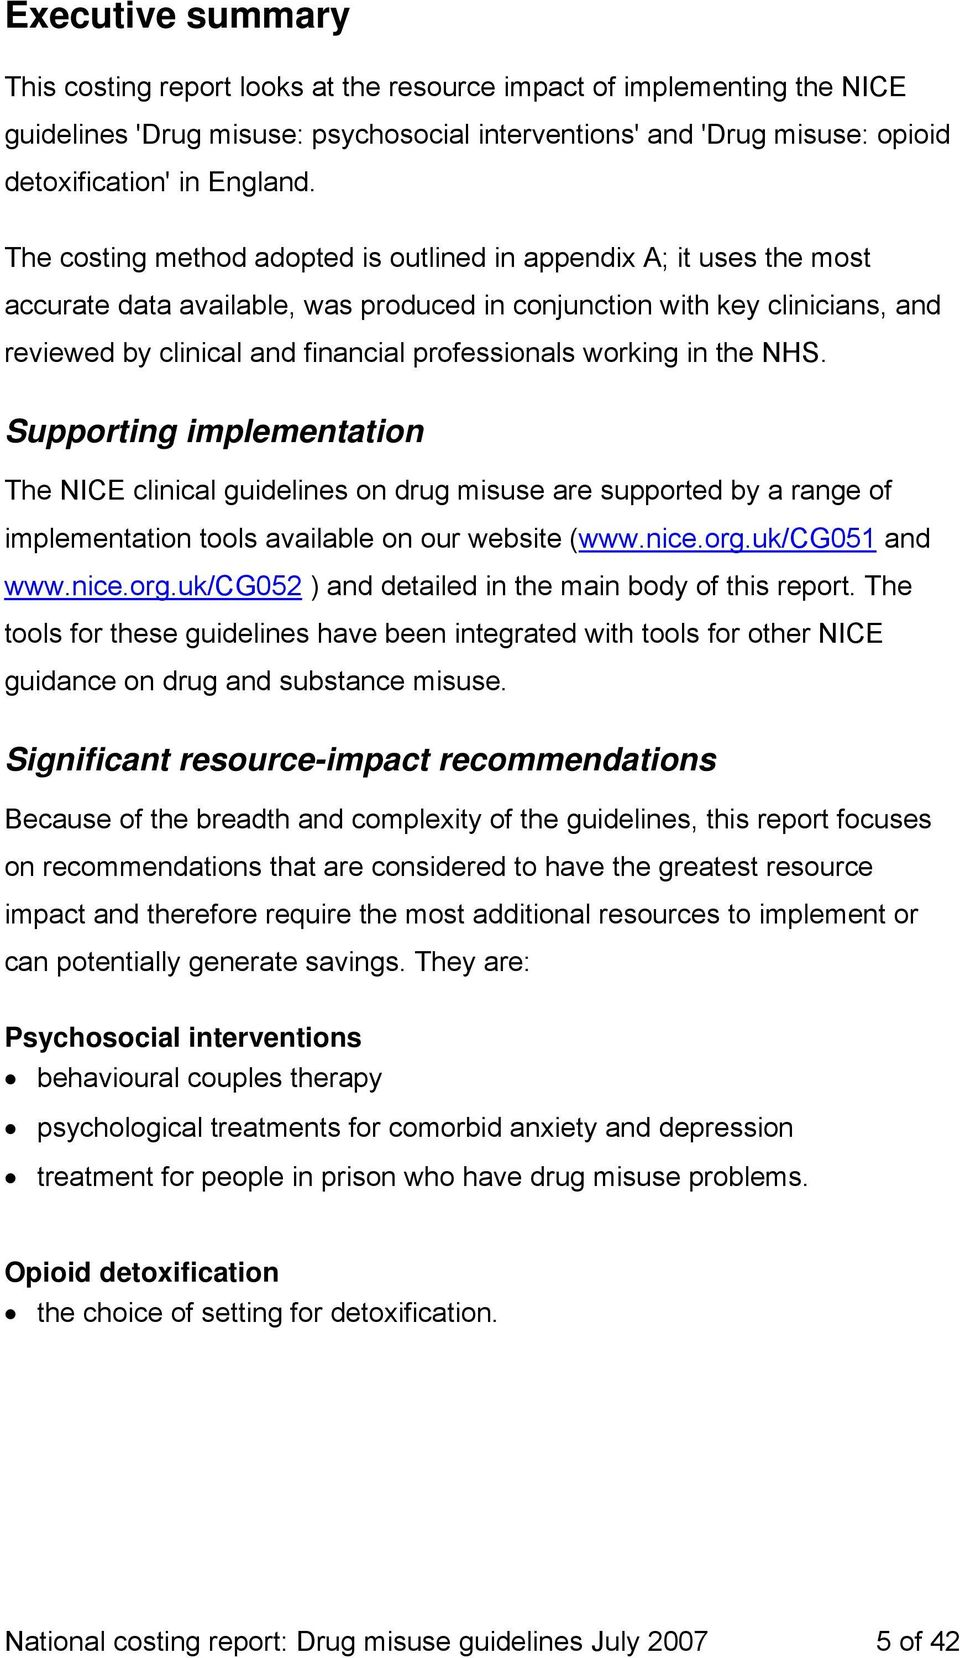 working in the NHS. Supporting implementation The NICE clinical guidelines on drug misuse are supported by a range of implementation tools available on our website (www.nice.org.